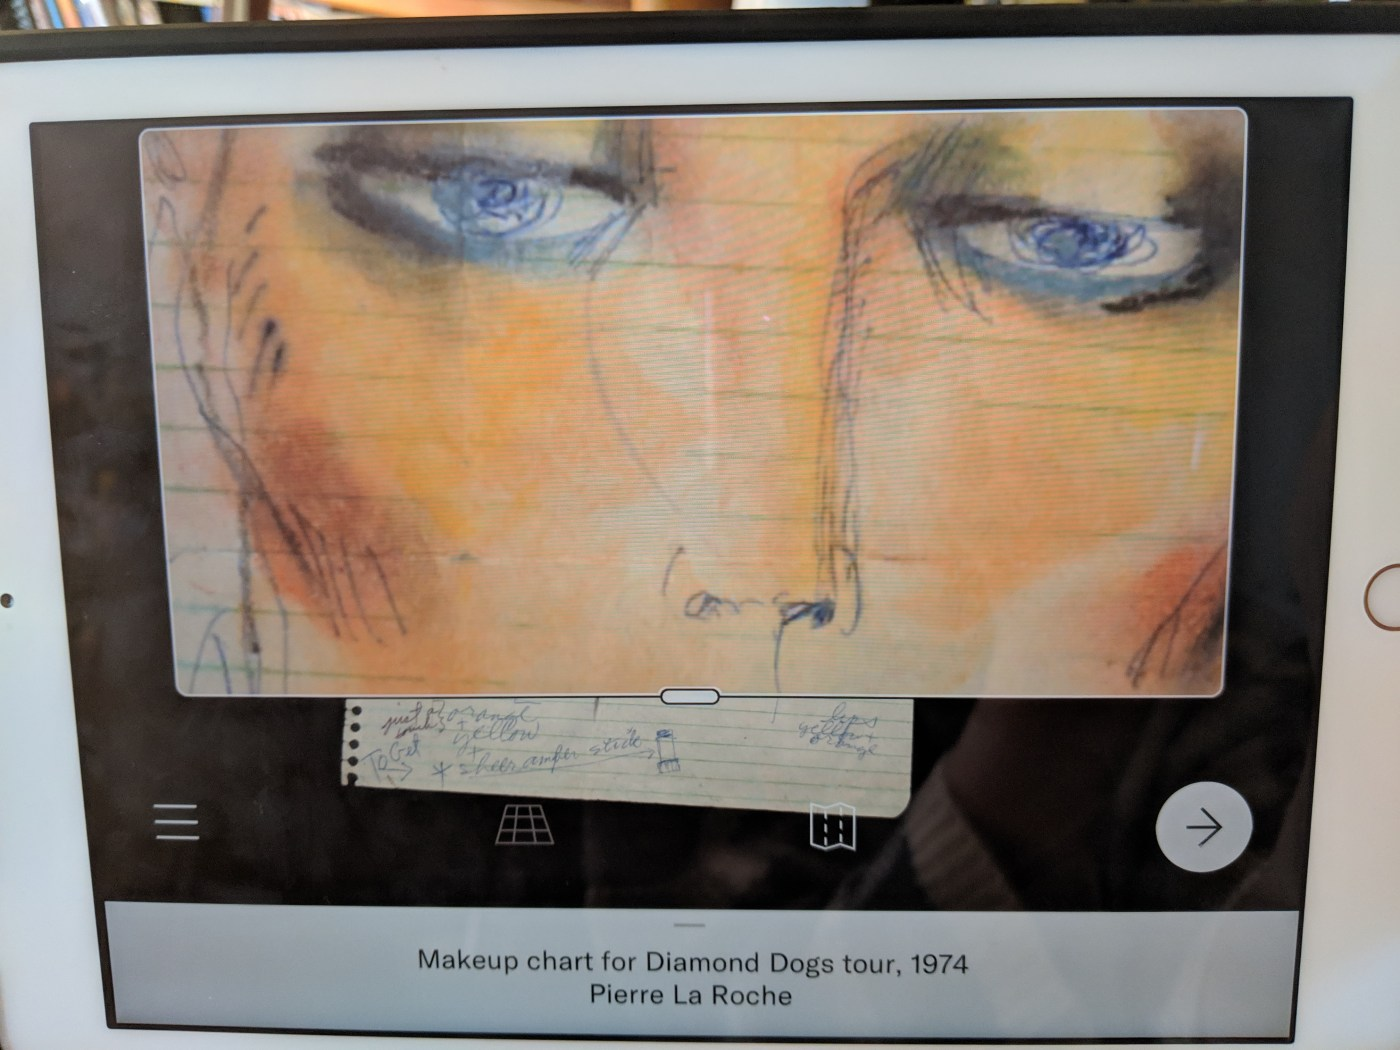 Example of Zoom function on iPad with the makeup chart for the Diamond Dogs tour